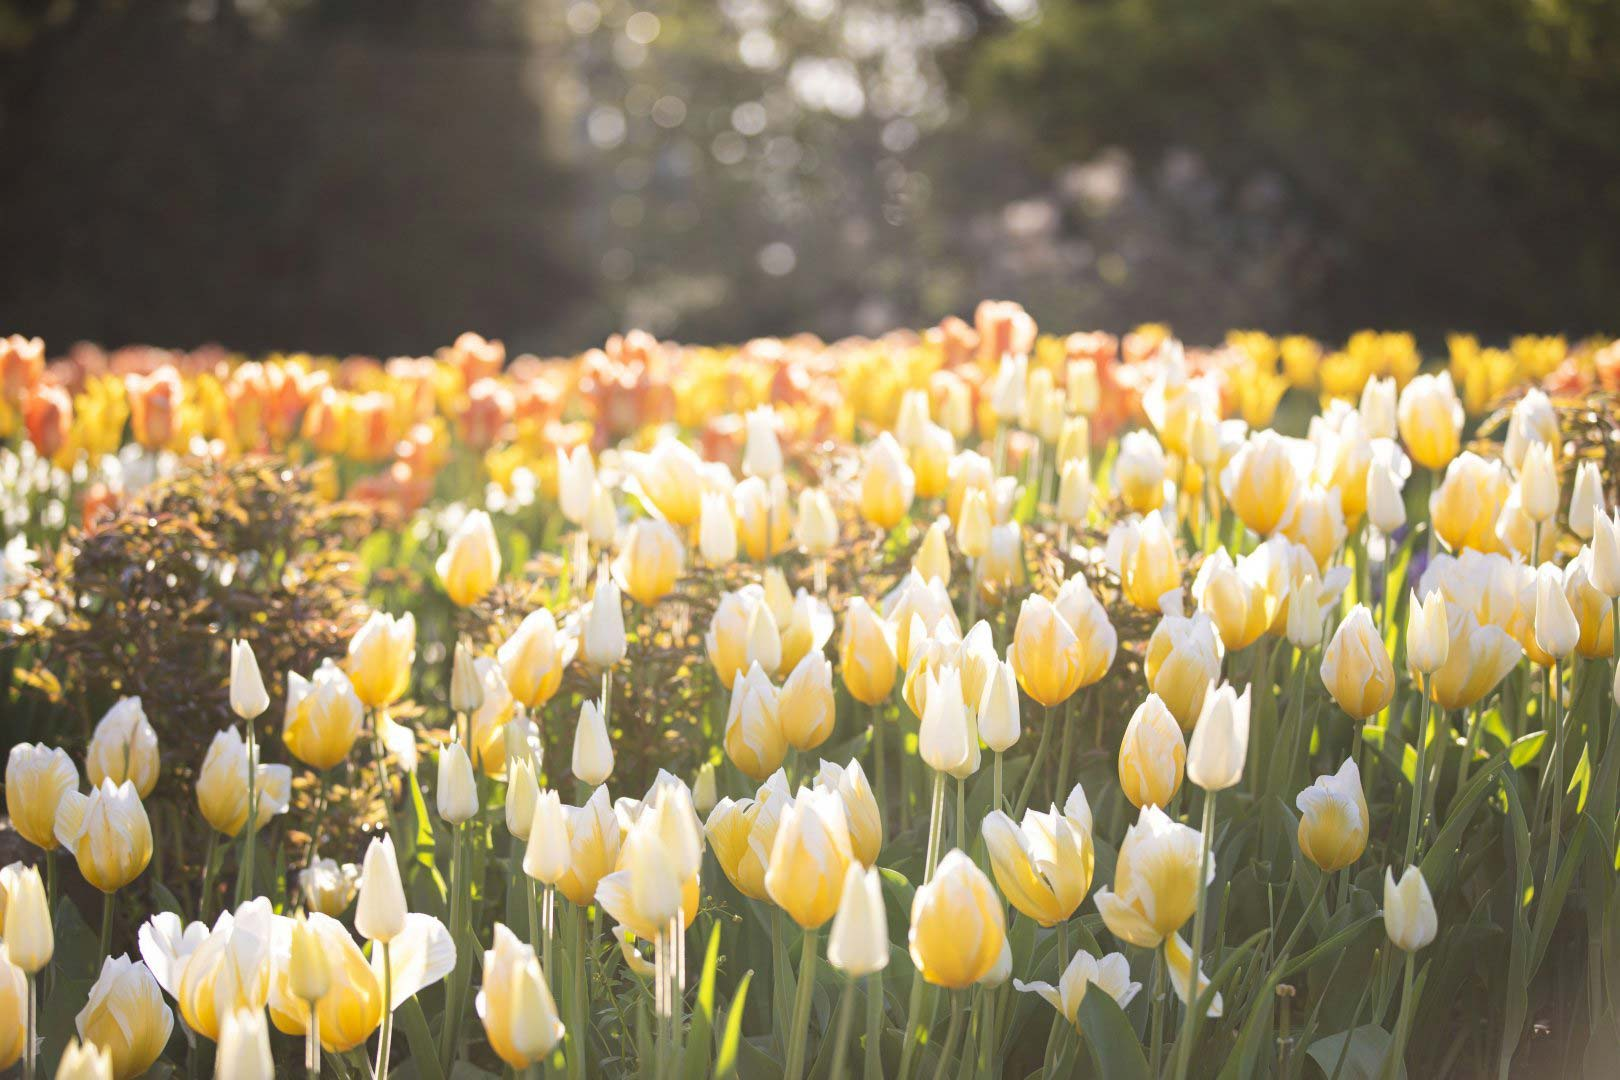 Spring Blooms returns this season at Newfields